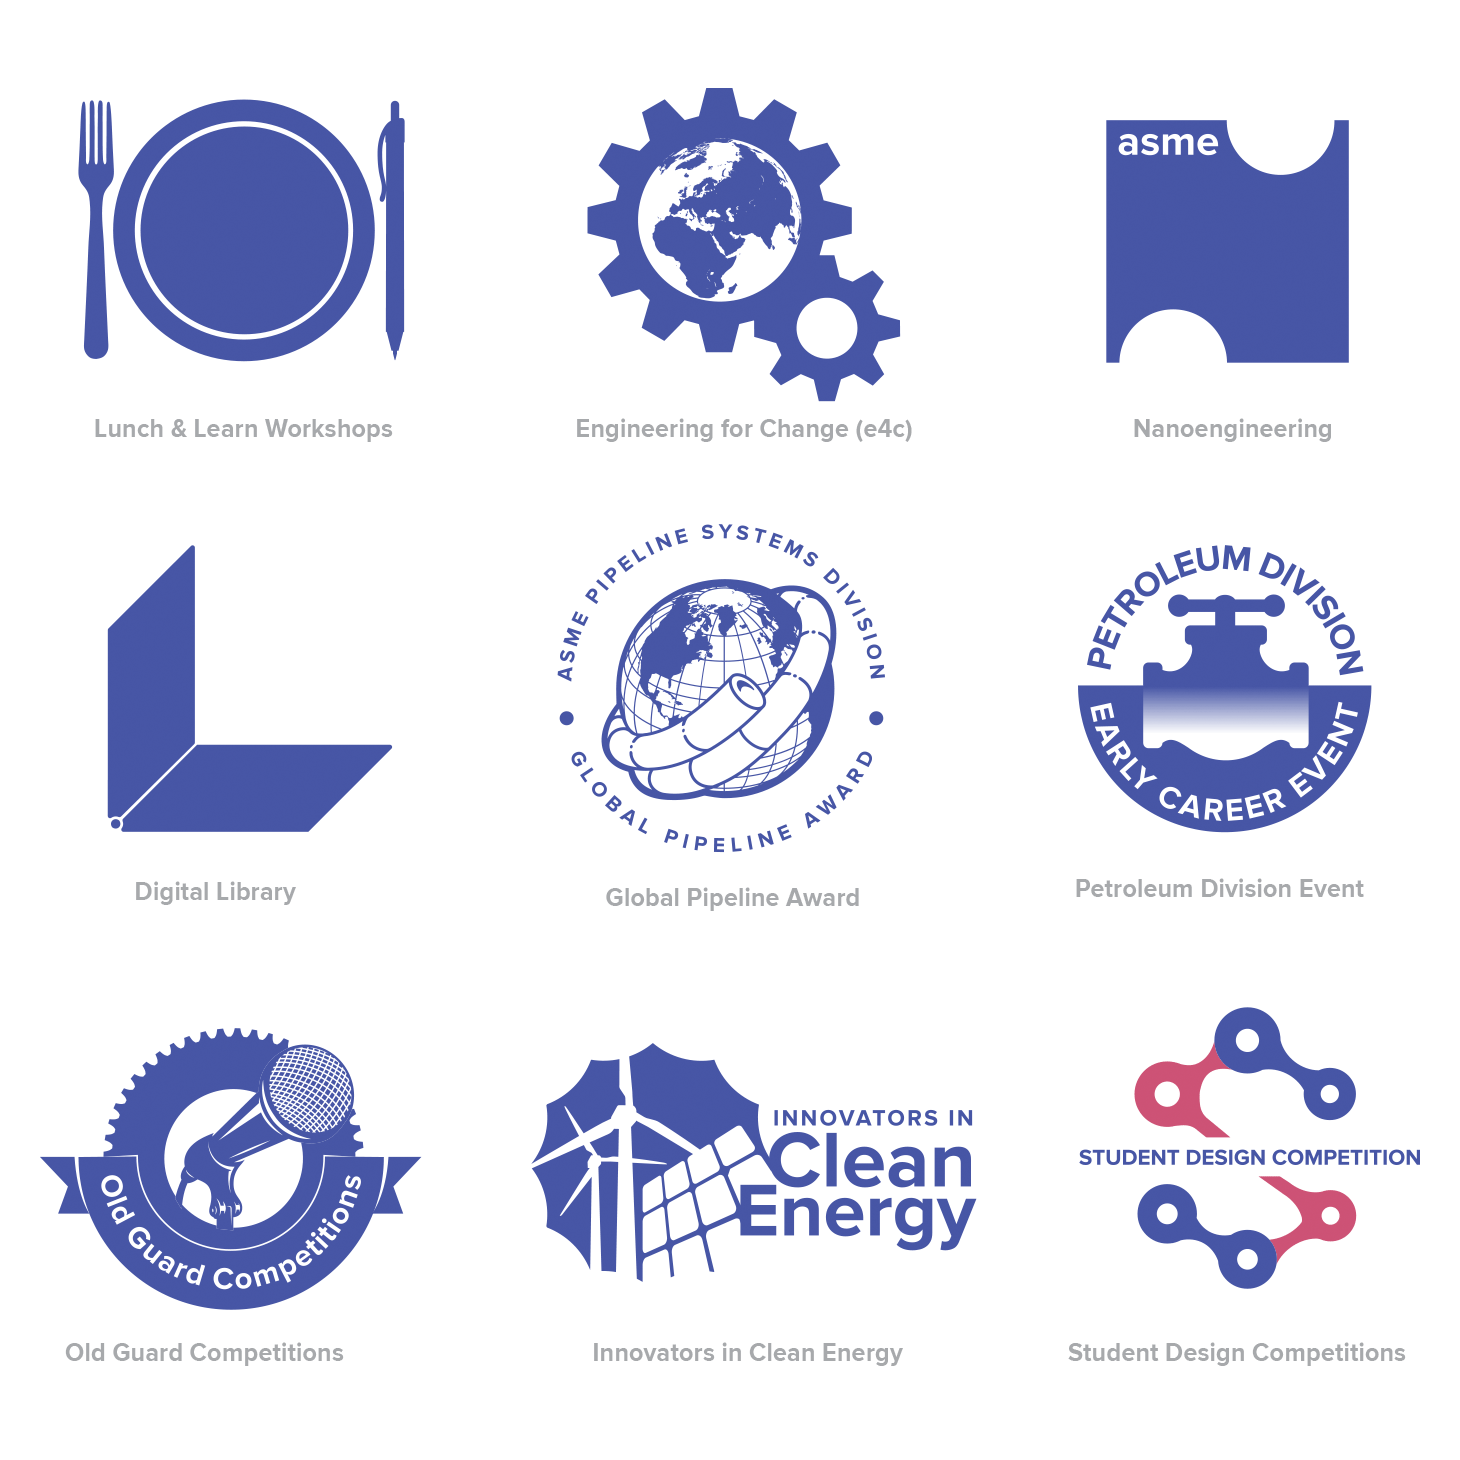 Logos for various programs and sections of ASME.org